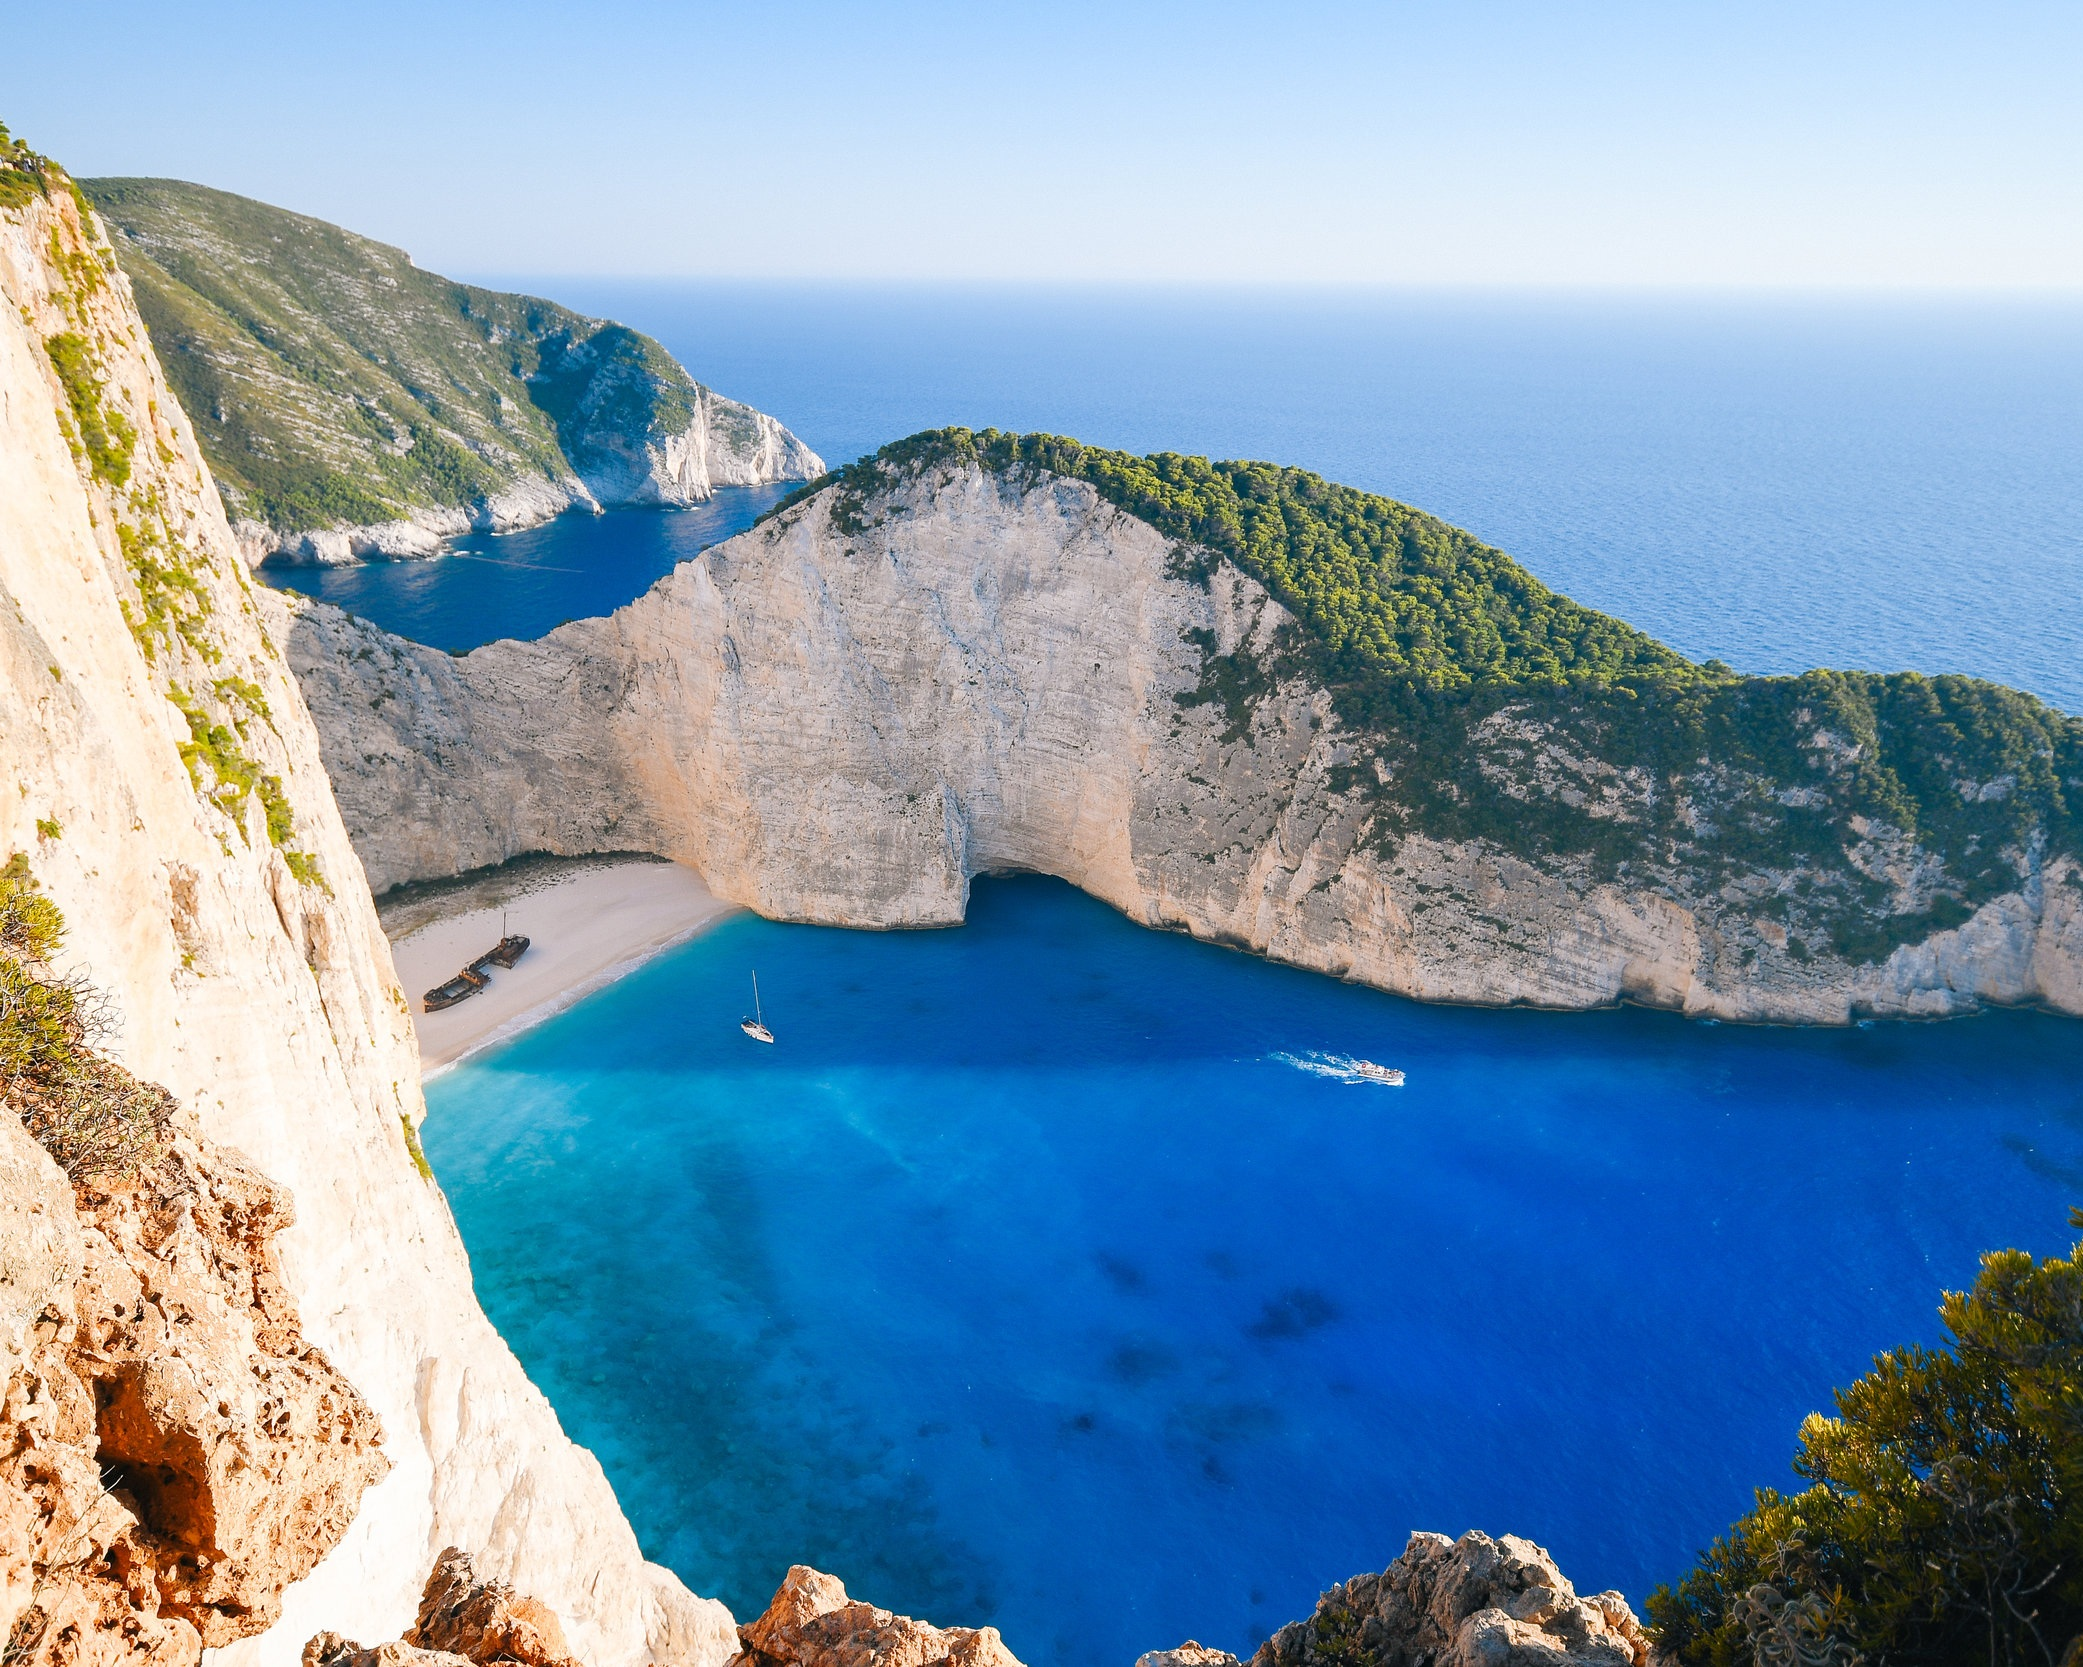 DESTINATION GREEK ISLANDS - Whether Dodecanese, Cyclades, or Ionian Islands - Greece is a true yachting paradise. The way is the goal: With over 14,000 km of coastline, several thousand uninhabited islands and 250 to 300 days of sunshine a year in Greece, everyone will find what he or she is looking for, whether idyll-seeking or in party mood. The individual, varied islands in Greece are very close to each other and are ideally explored by island hopping. Experience rocky stone coasts, golden sandy beaches and deserted coves as well as picturesque villages during your yacht trip. Take all the time to experience all the facets of the fascination in Greece.Discover amazing yachting destinations in our blog >>